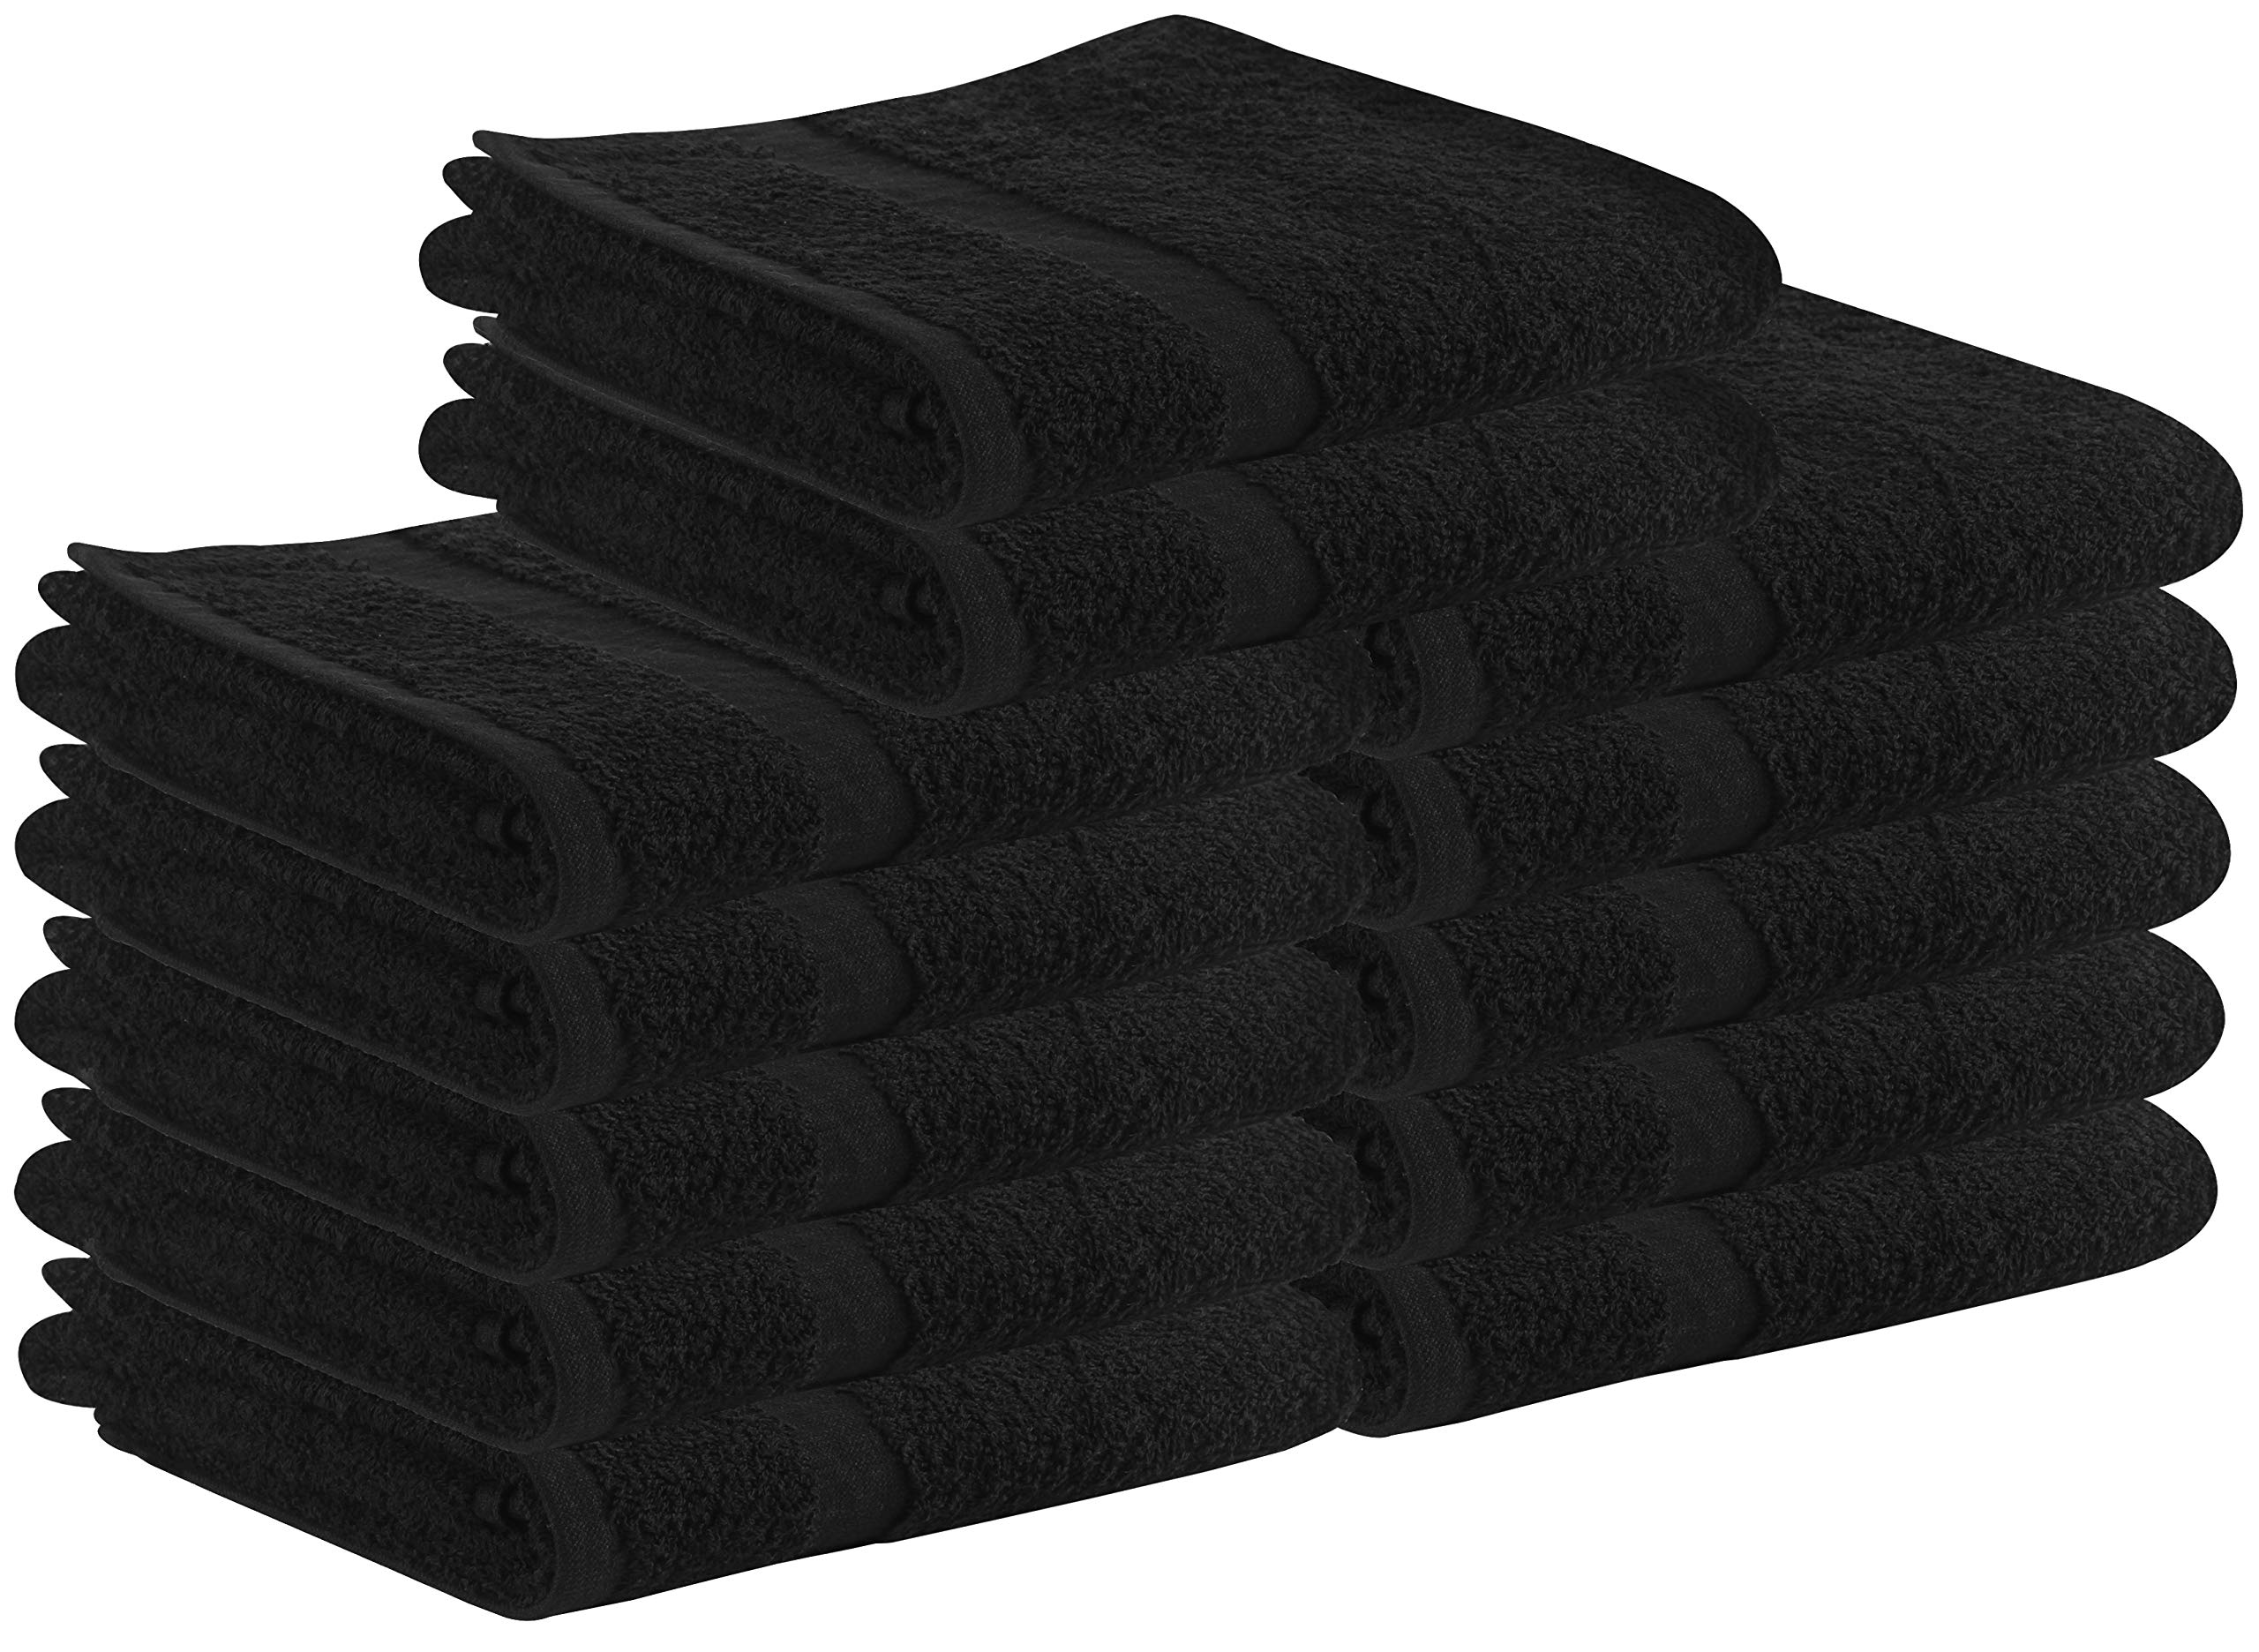 Utopia Cotton Black Salon Towels - (Pack of 144) - (16 inches x 27 inches)